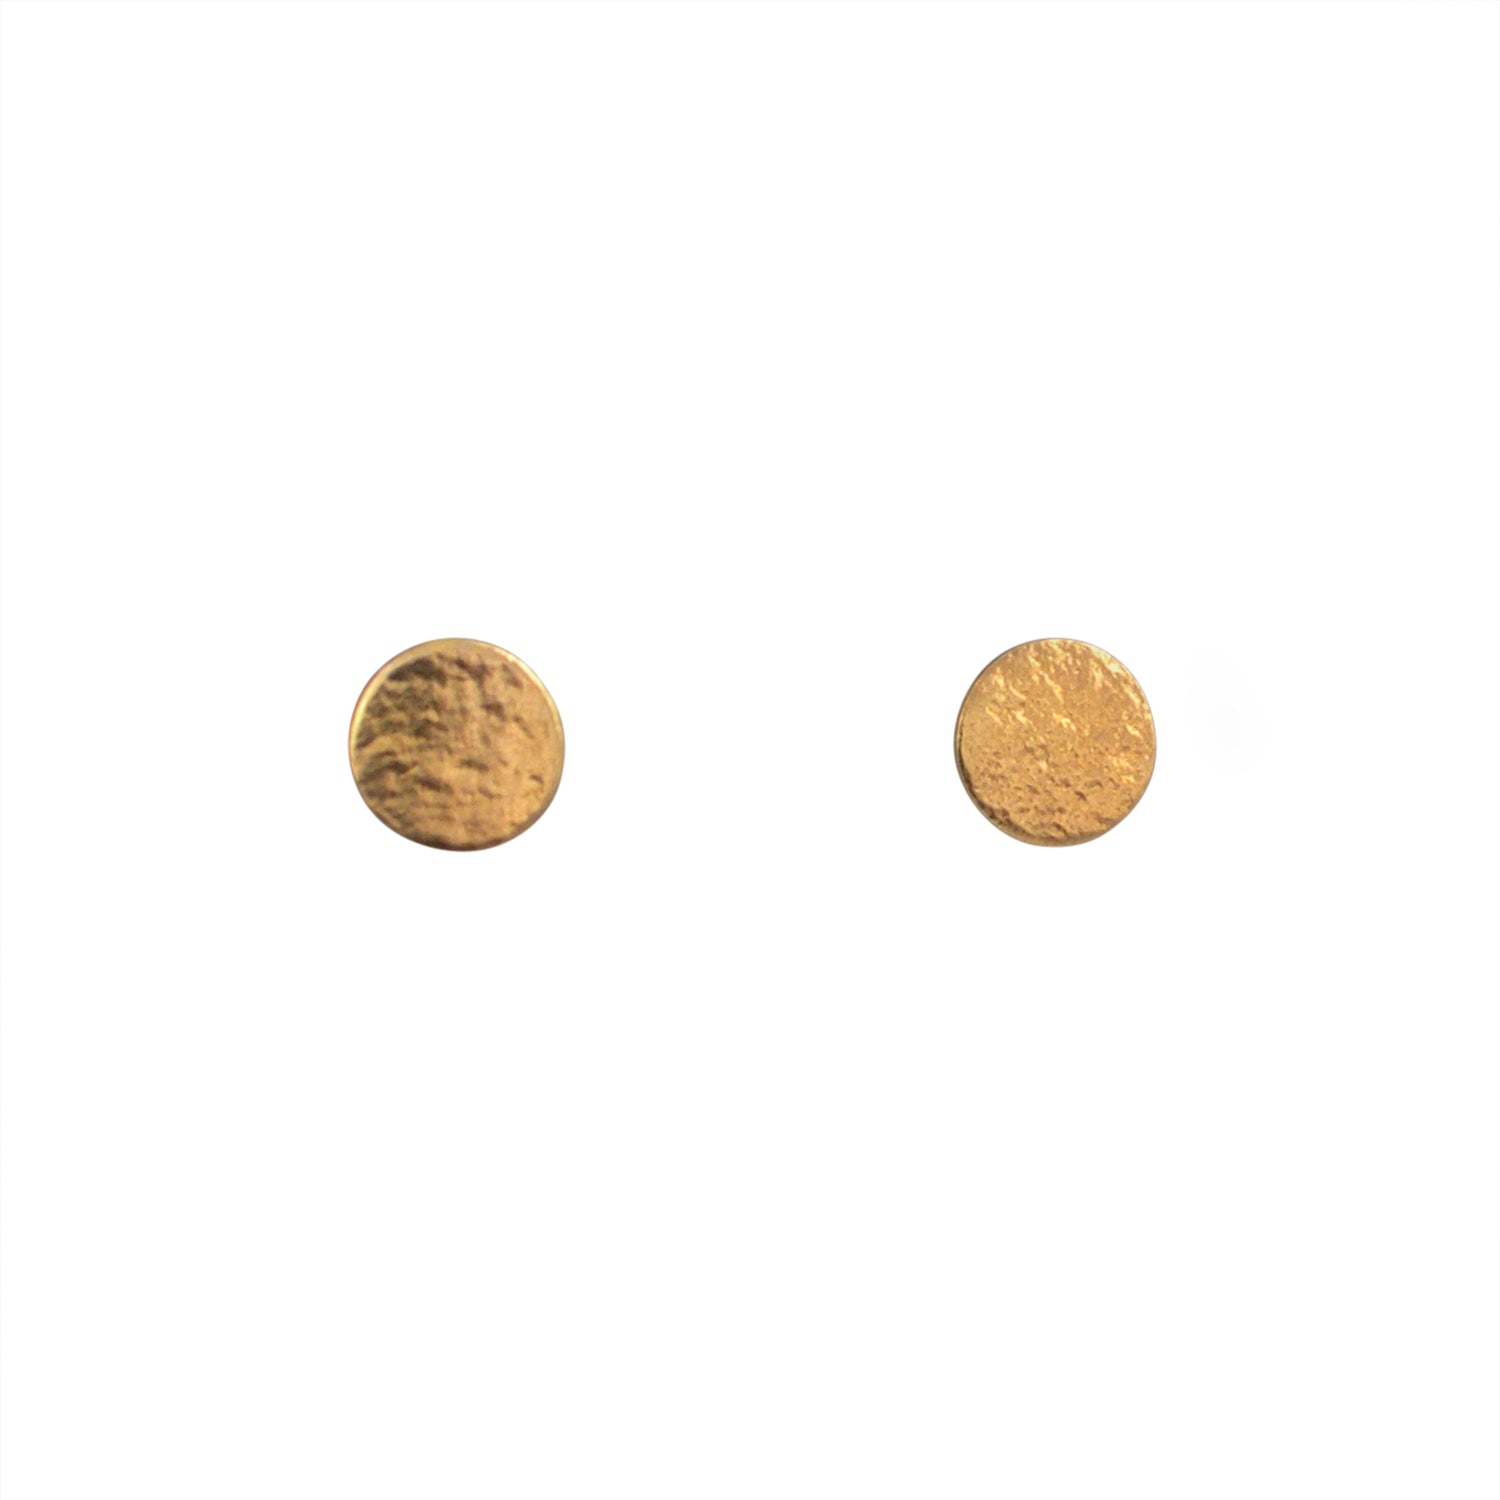 Gold Stud Earrings in Medium